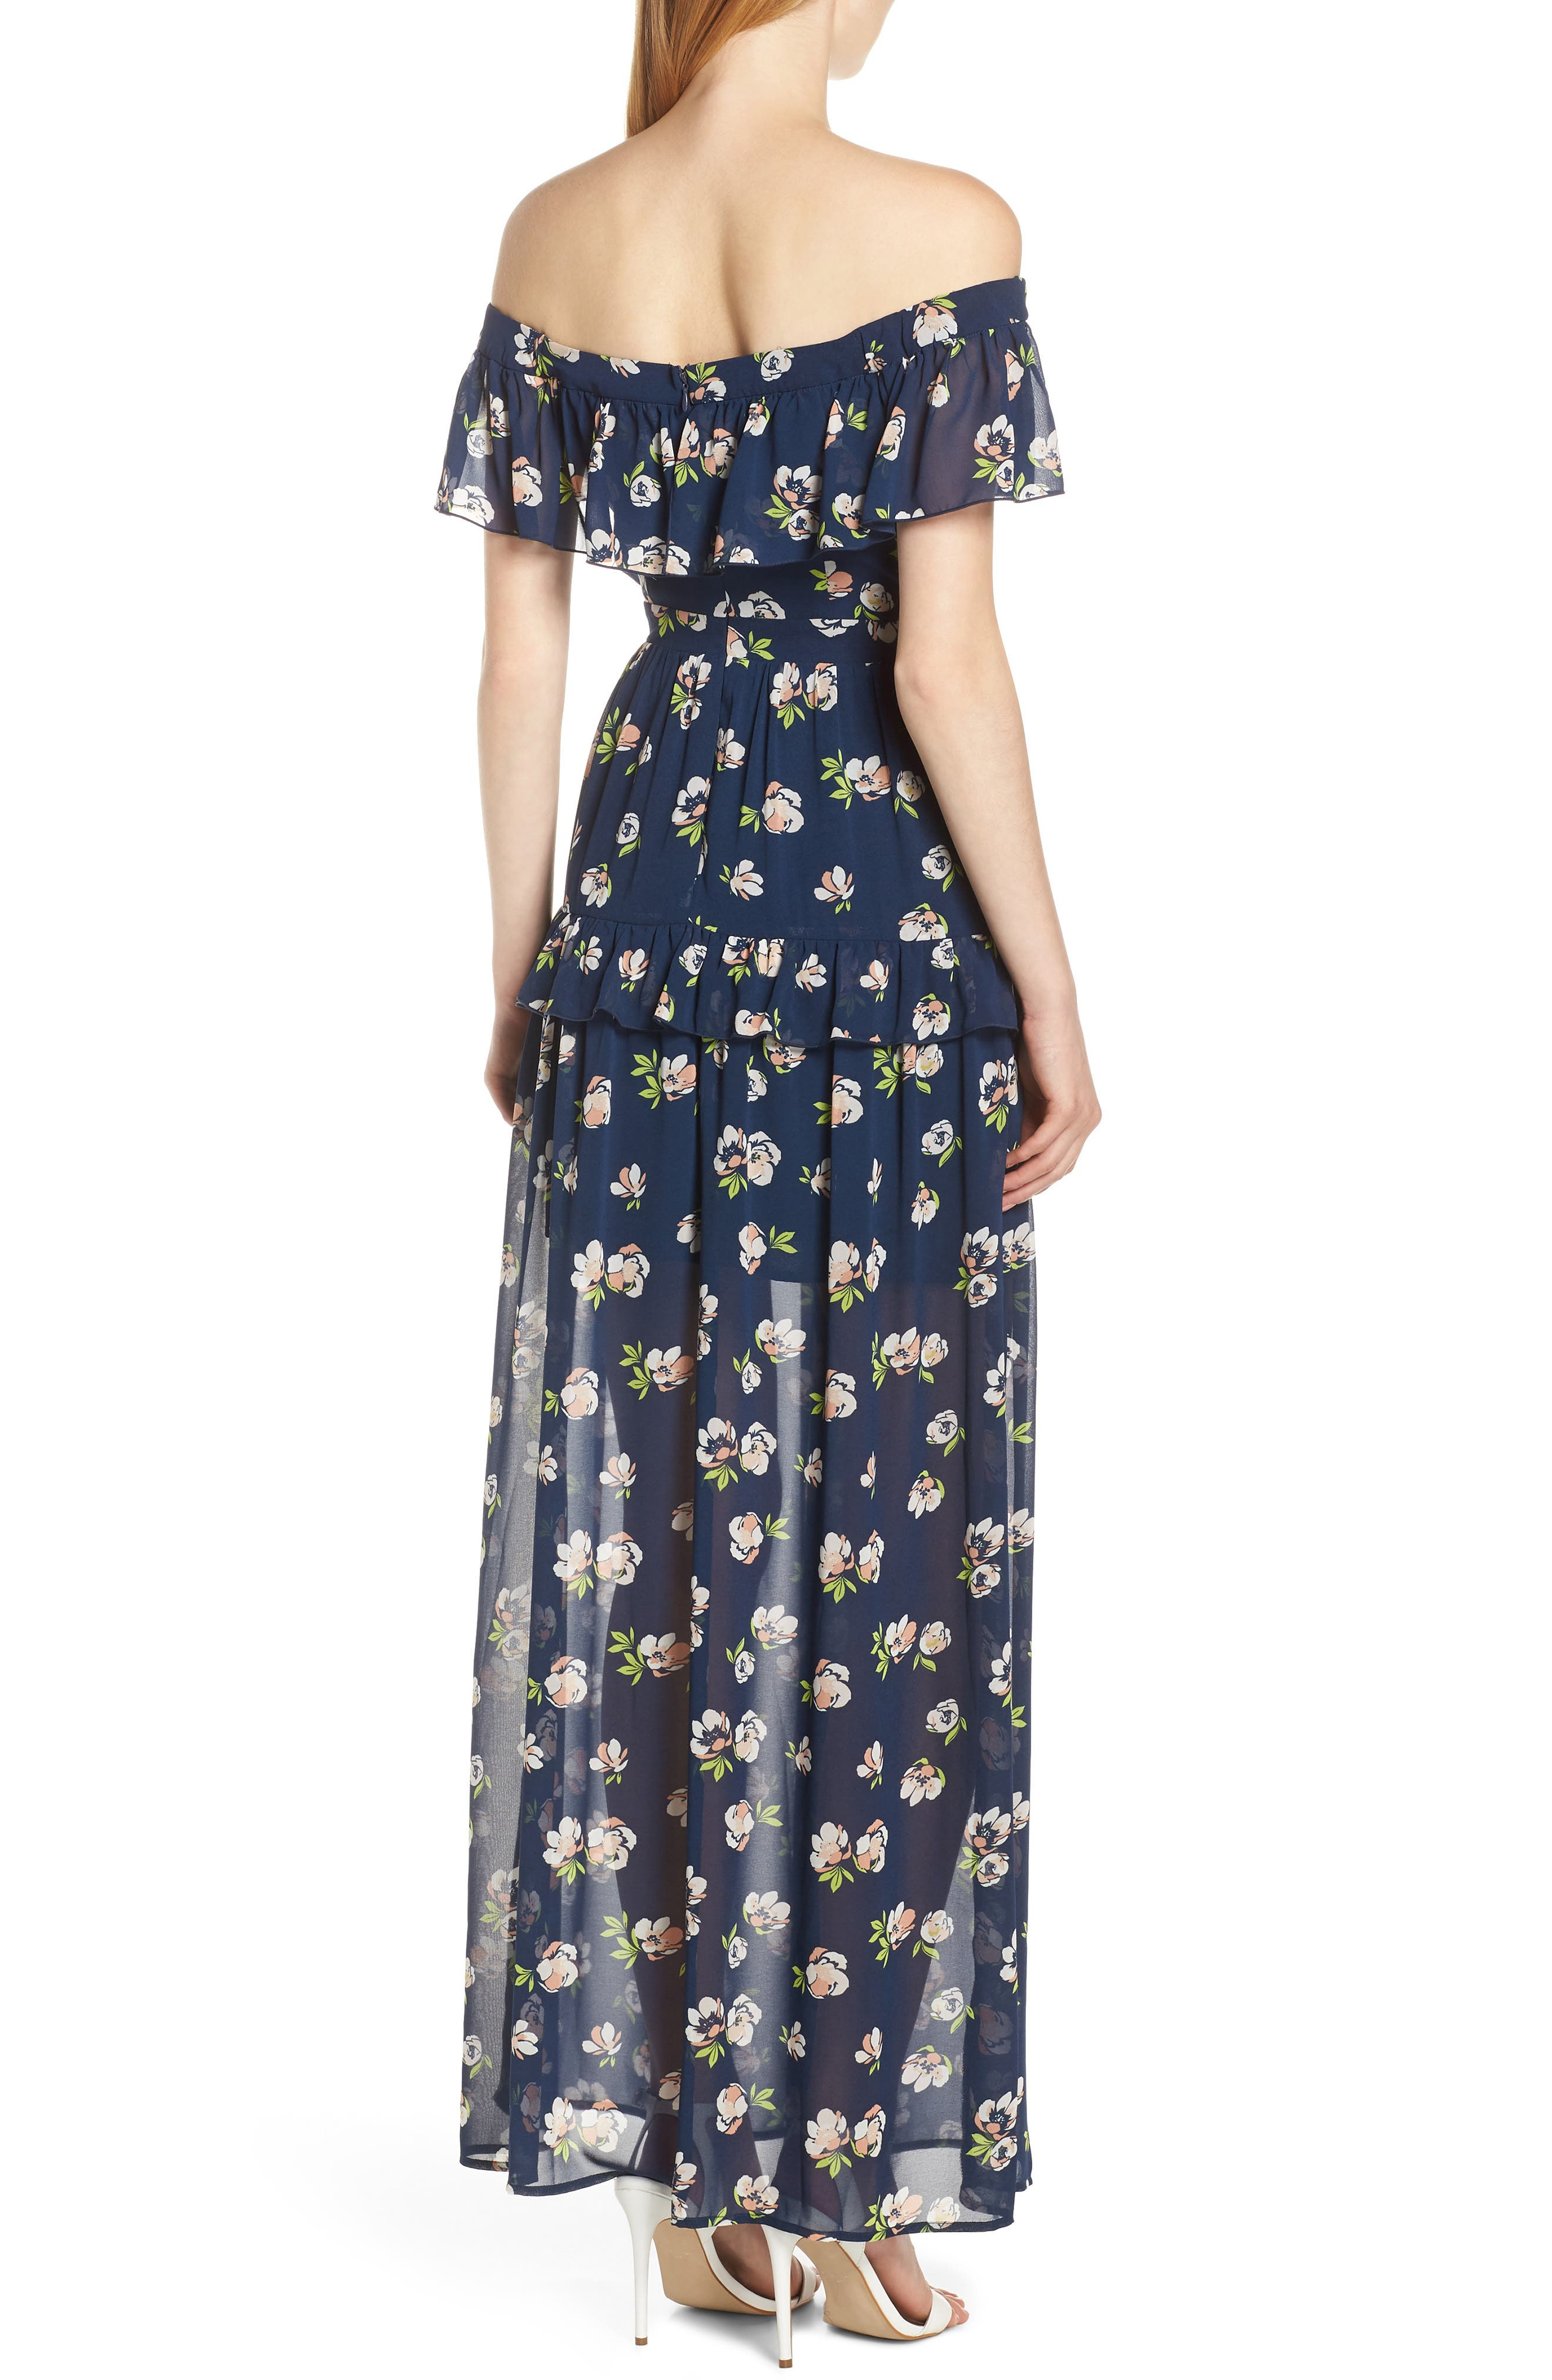 CHARLES HENRY, Off the Shoulder Ruffle Maxi Dress, Alternate thumbnail 2, color, NAVY PEACH FLORAL